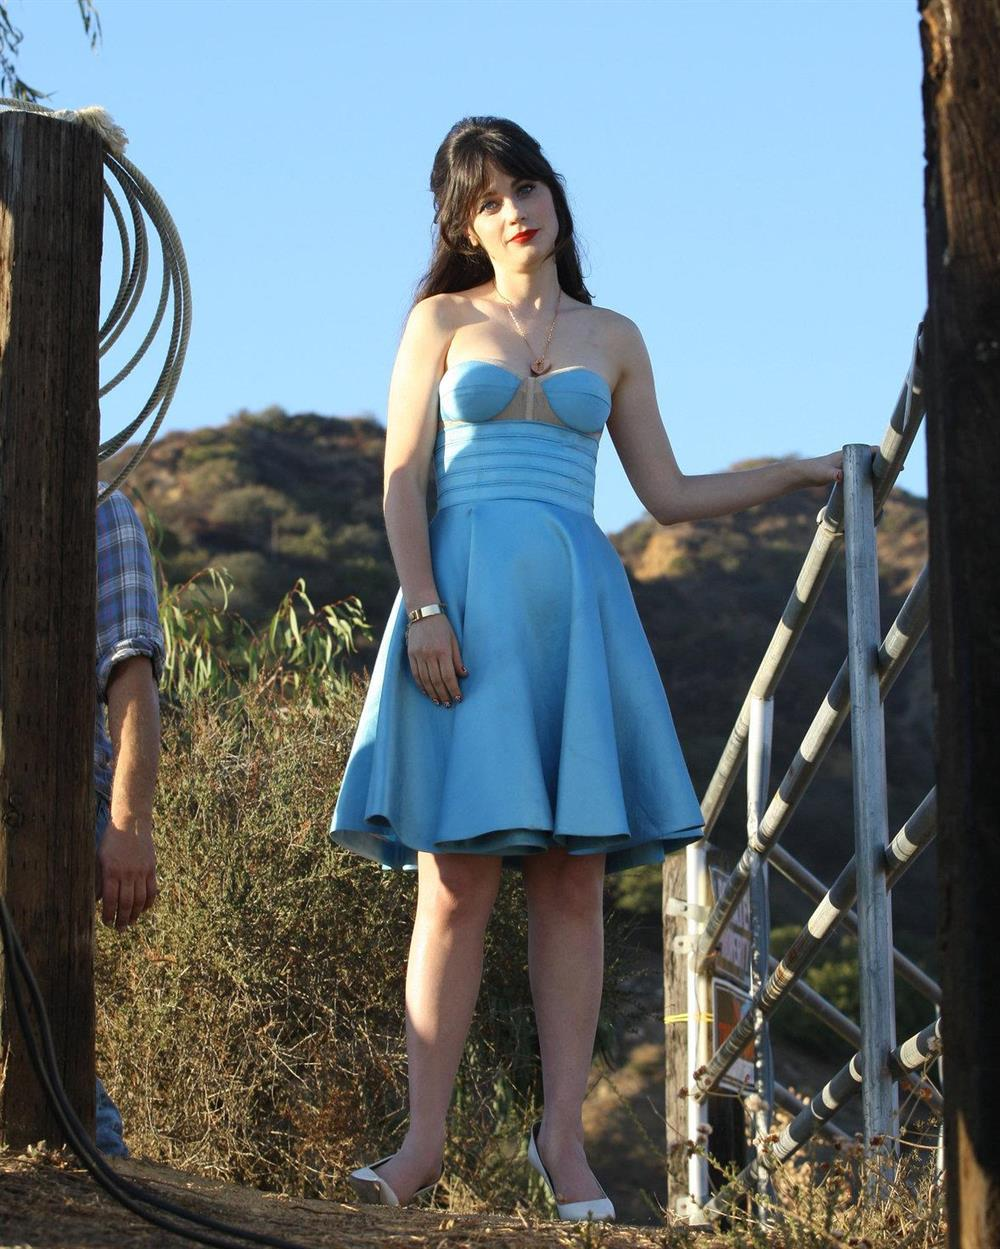 Zooey Deschanel set of photoshoot at the Sunset Ranch LA